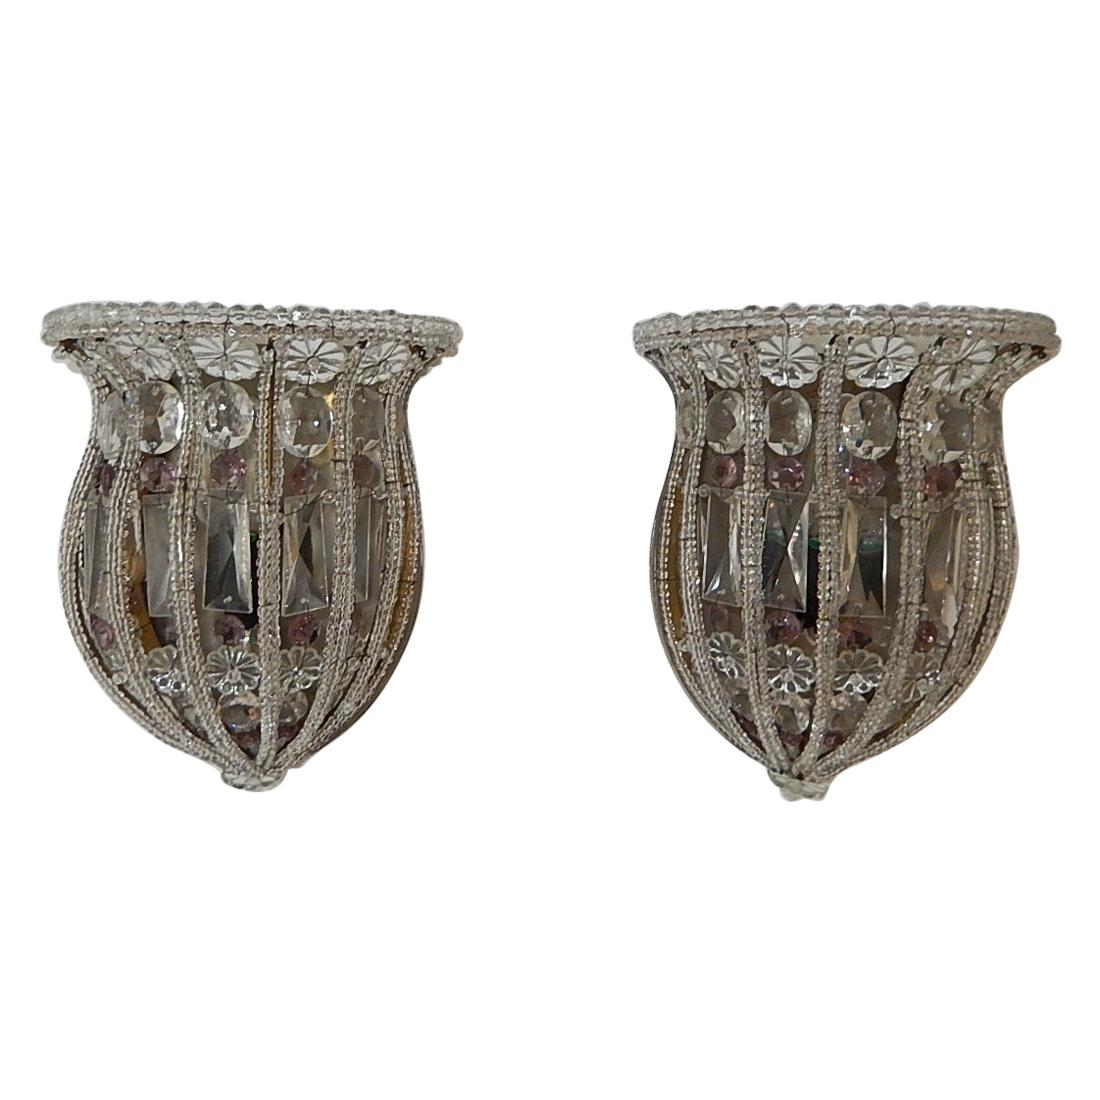 Maison Bagues Crystal & Amethyst Beaded Sconces, circa 1900